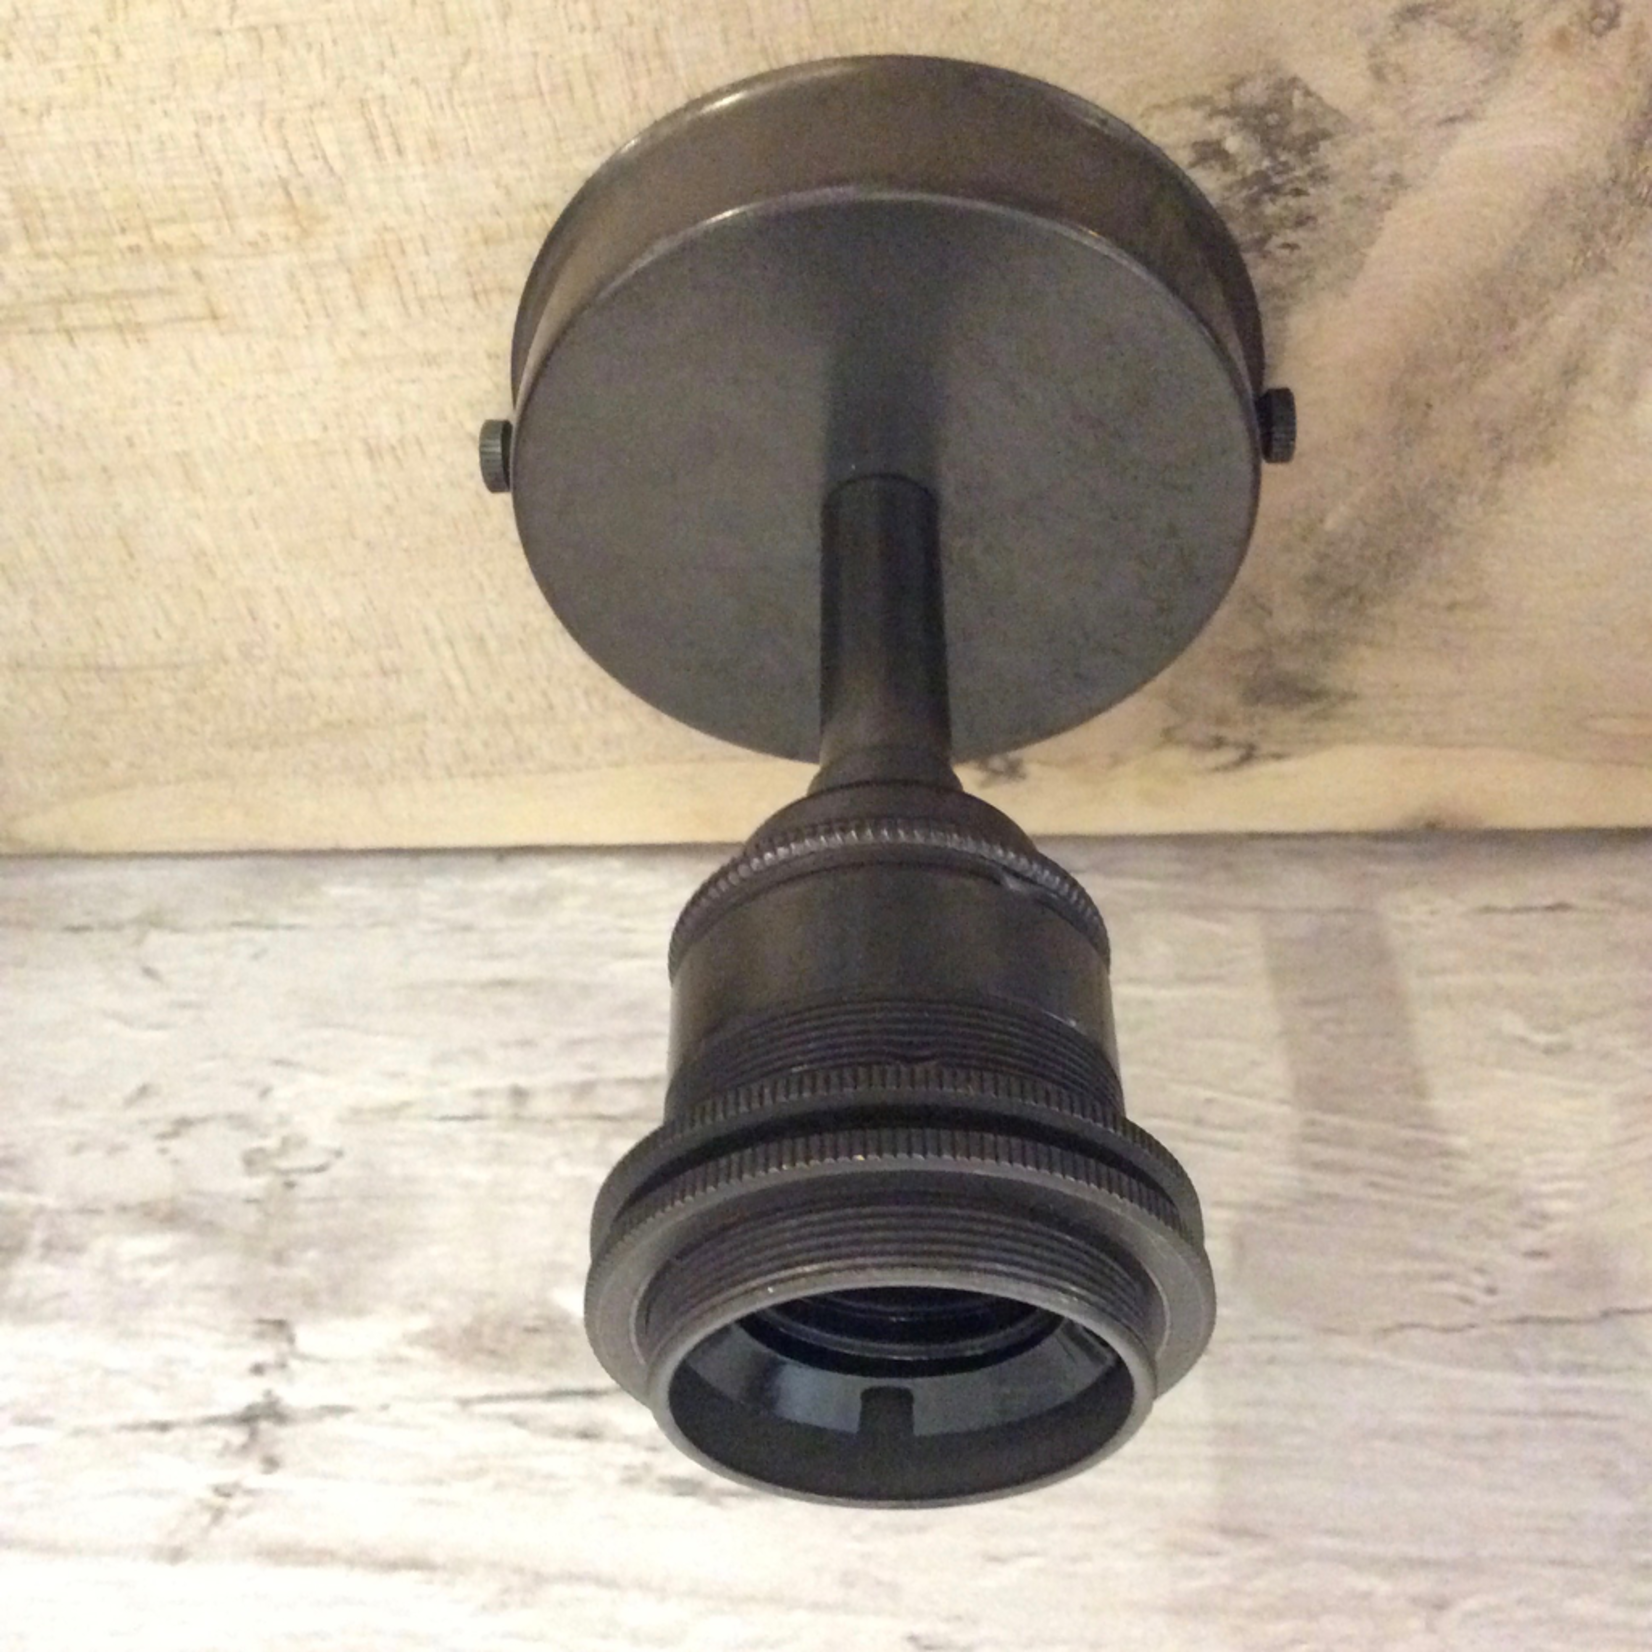 Homebird BRONZE Ceiling Light with 2 Shade Rings